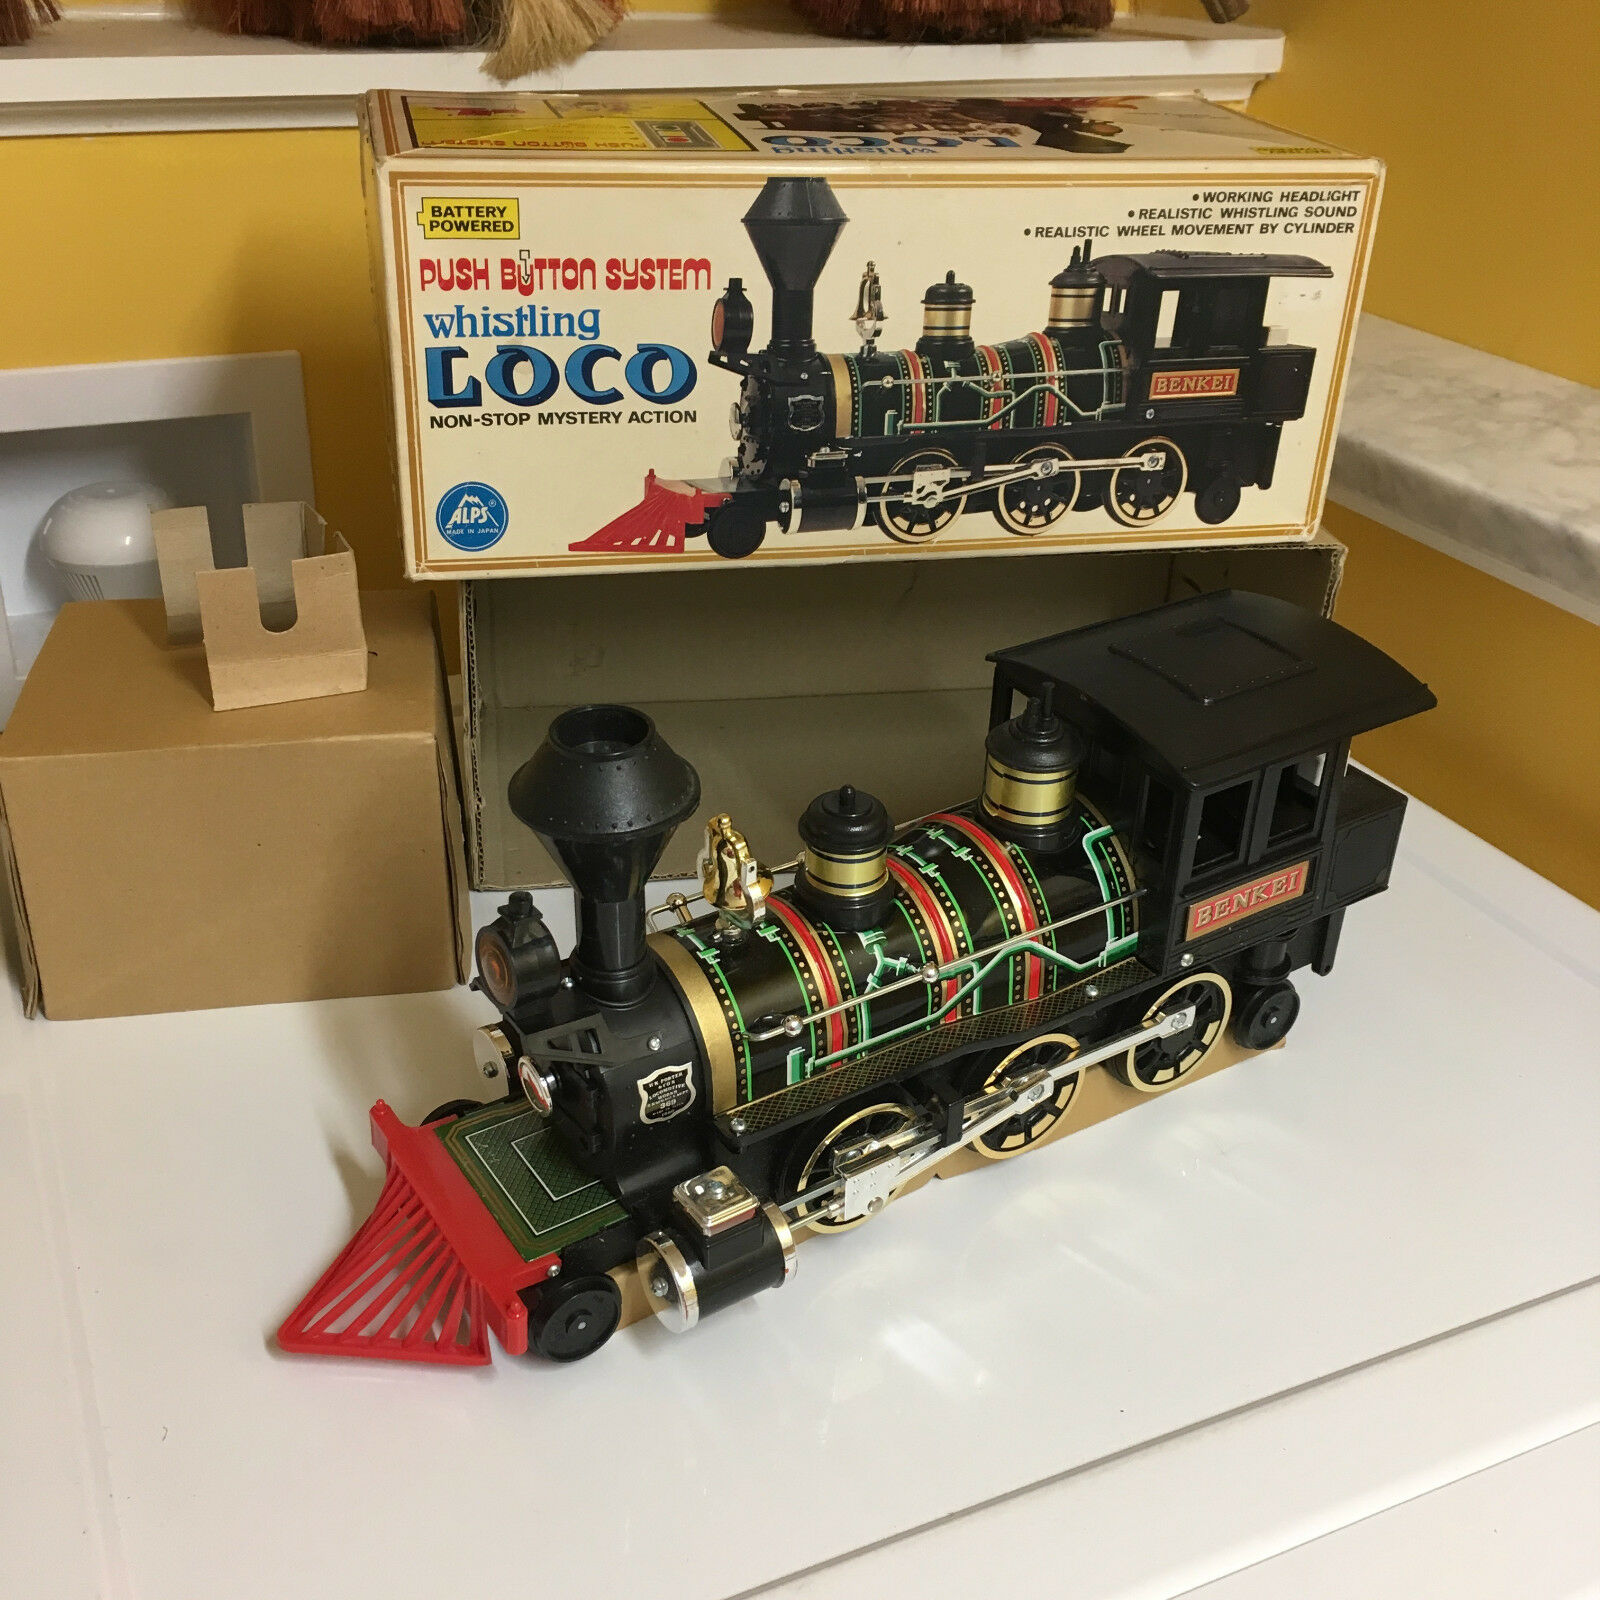 ALPS LARGE BATTERY OPERATED PUSH BUTTON WHISTLING LOCO, FULLY WORKING W BOX